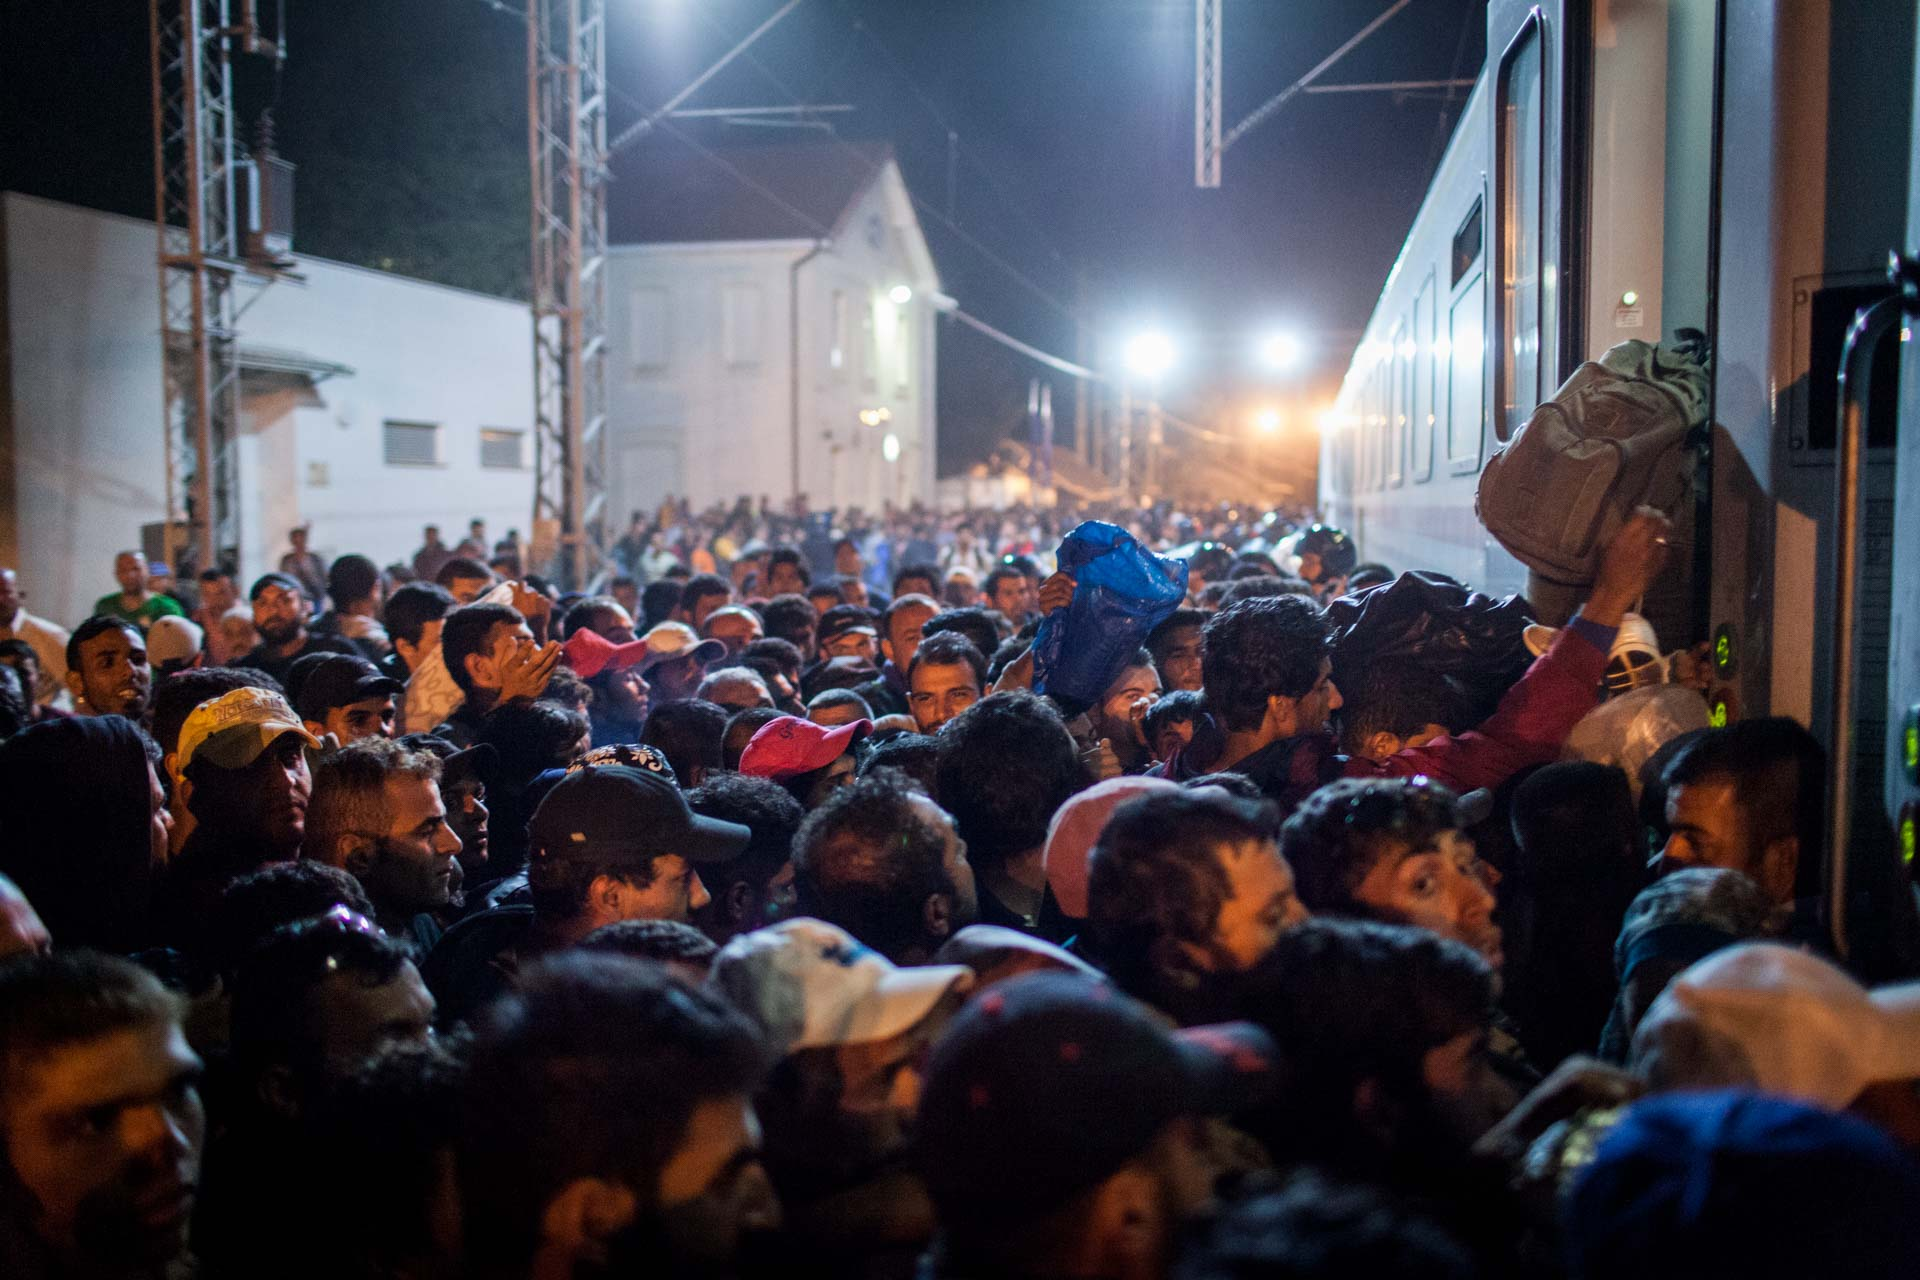 With the way to Hungary closed, many refugees diverted to Croatia instead, in order to get to Western Europe. After waiting for days for a transport to transfer them to Slovenia, thousands of people fight for a spot on a train.